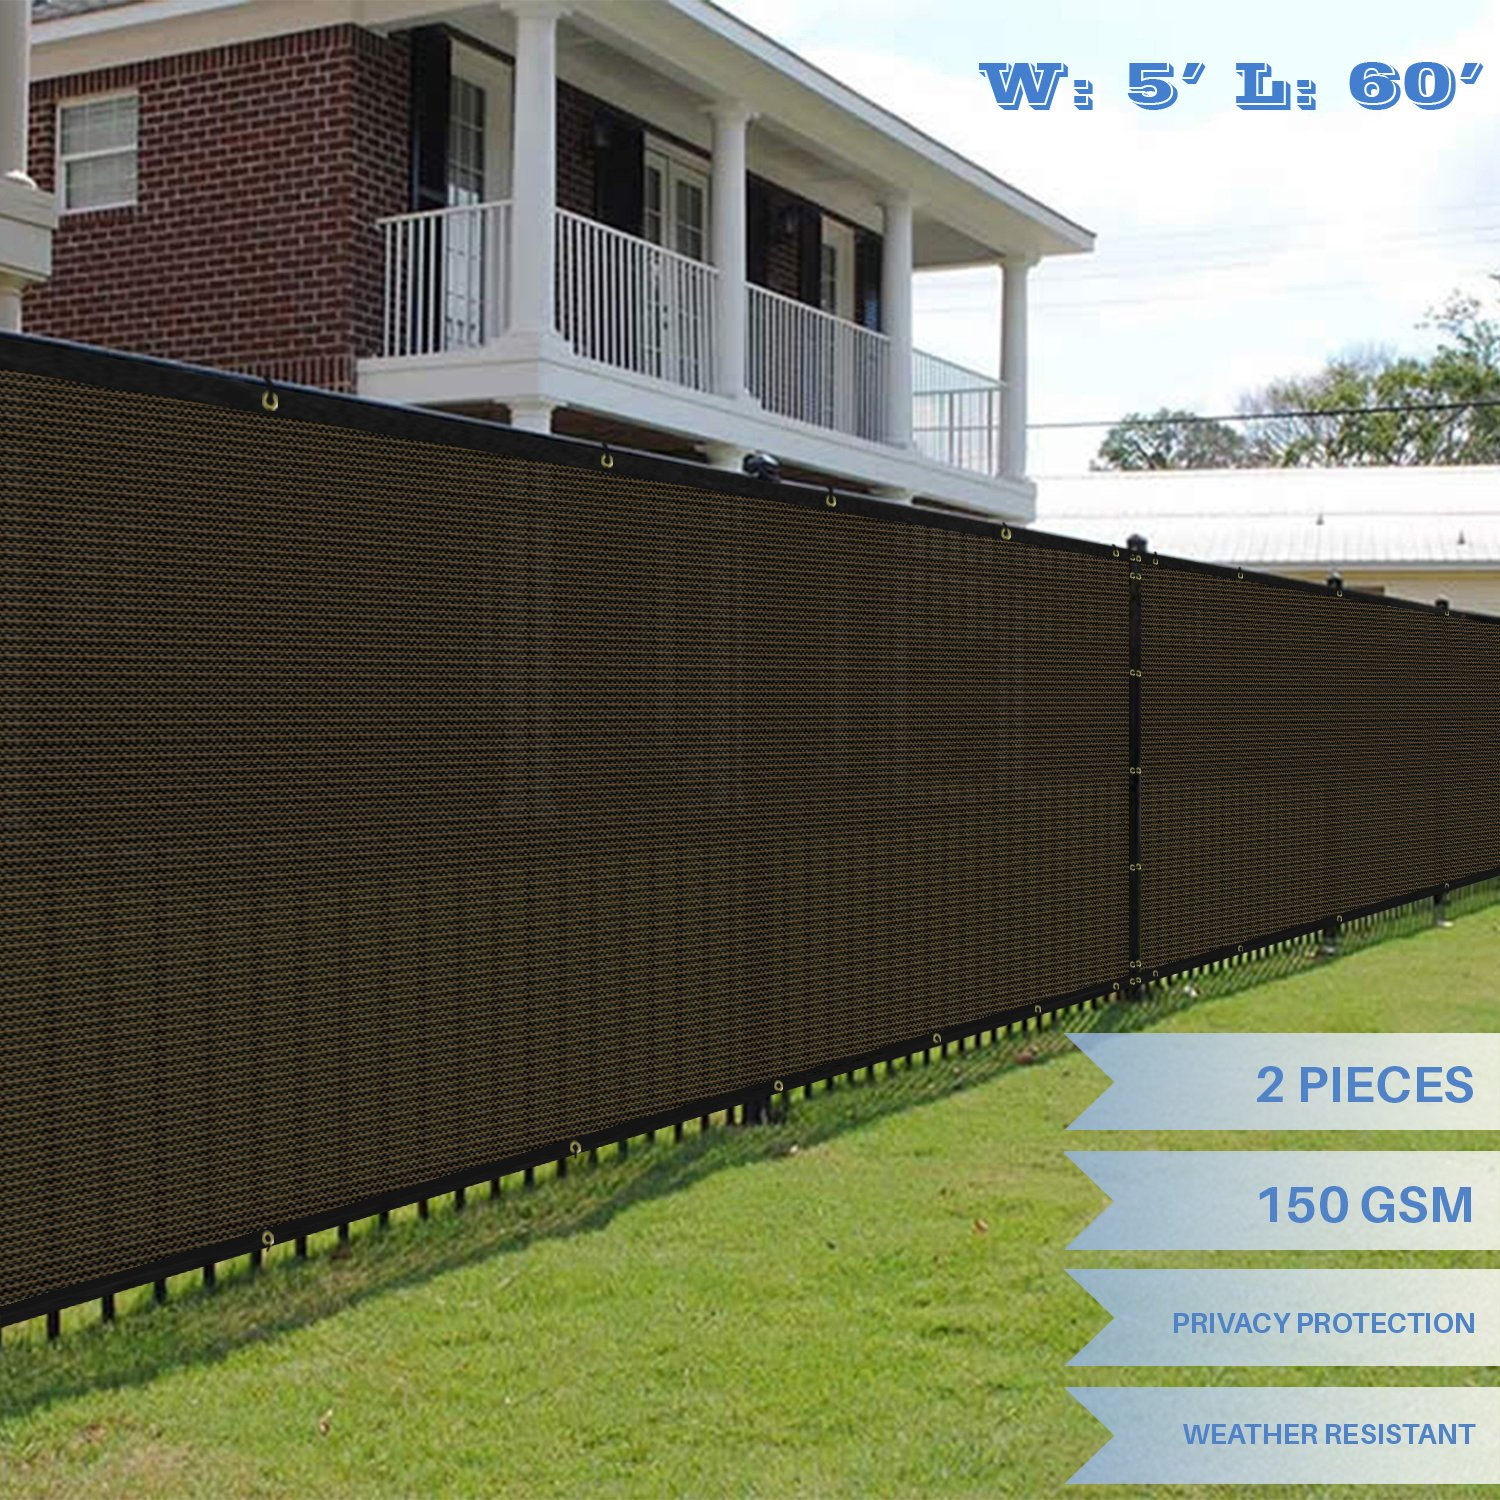 E&K Sunrise 5' x 60' Brown Fence Privacy Screen, Commercial Outdoor Backyard Shade Windscreen Mesh Fabric 3 Years Warranty (Customized Sizes Available) - Set of 2 by E&K Sunrise